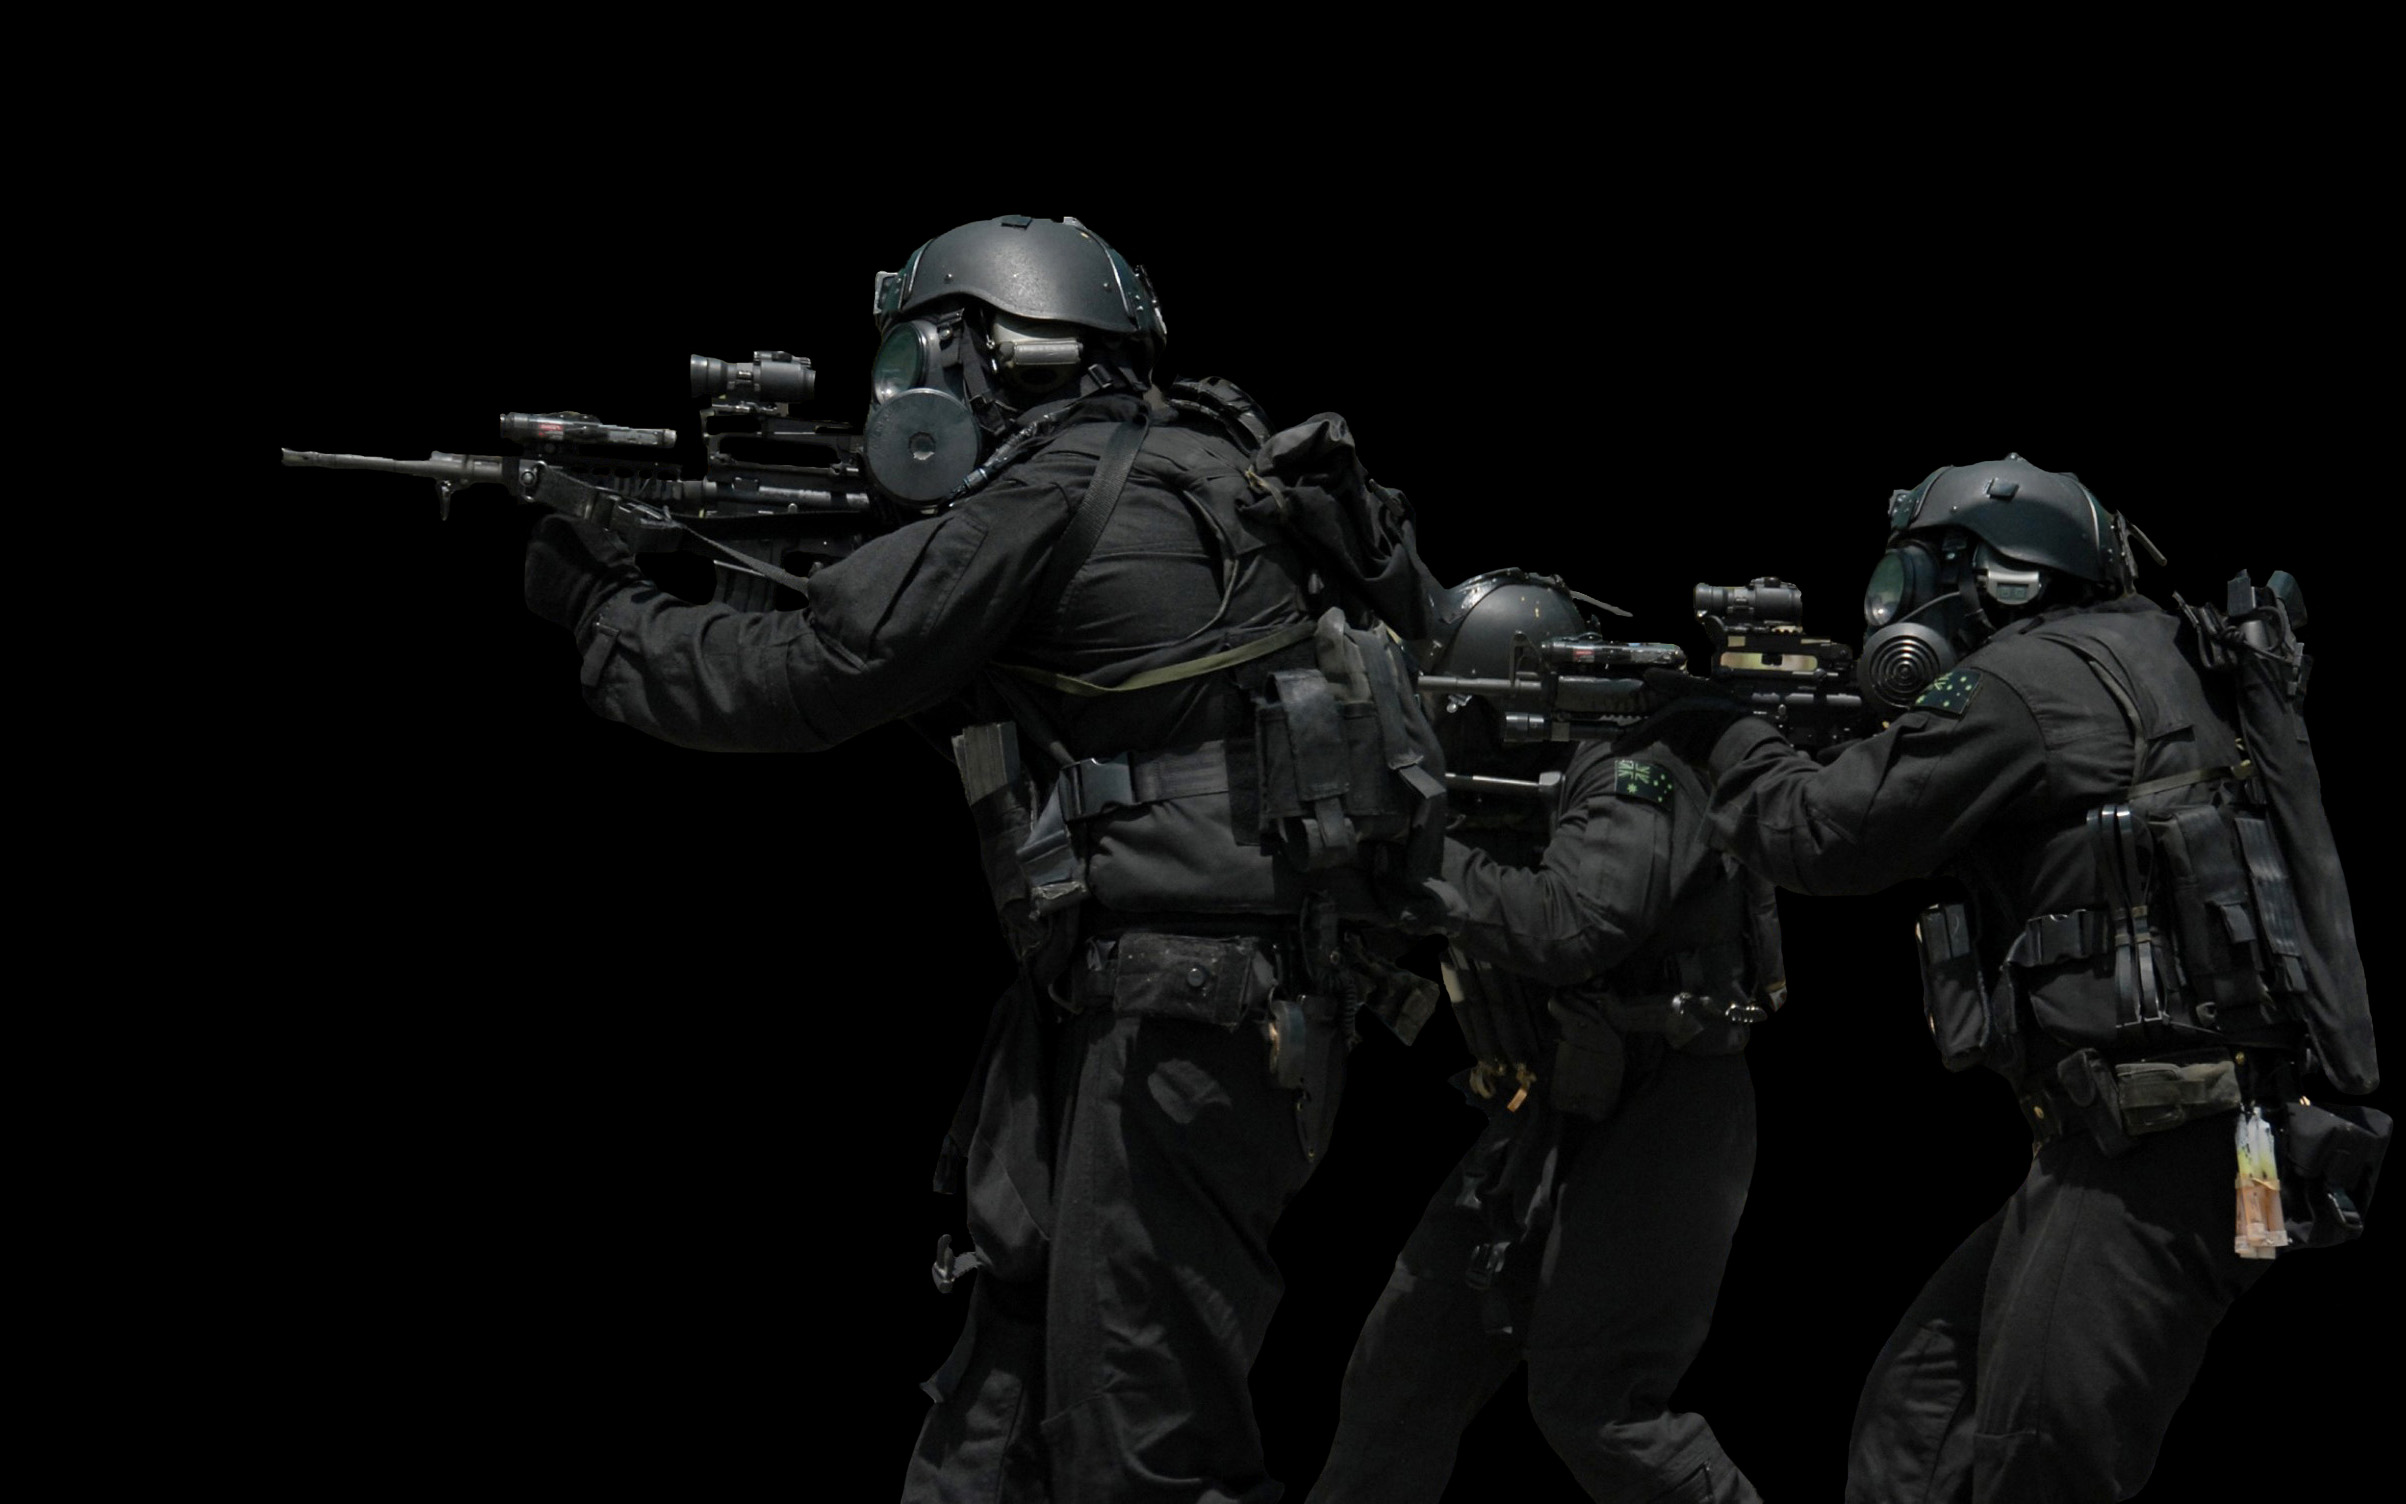 wallpaper Swat wallpaper wallpapers for desktop SWAT police 2406x1504